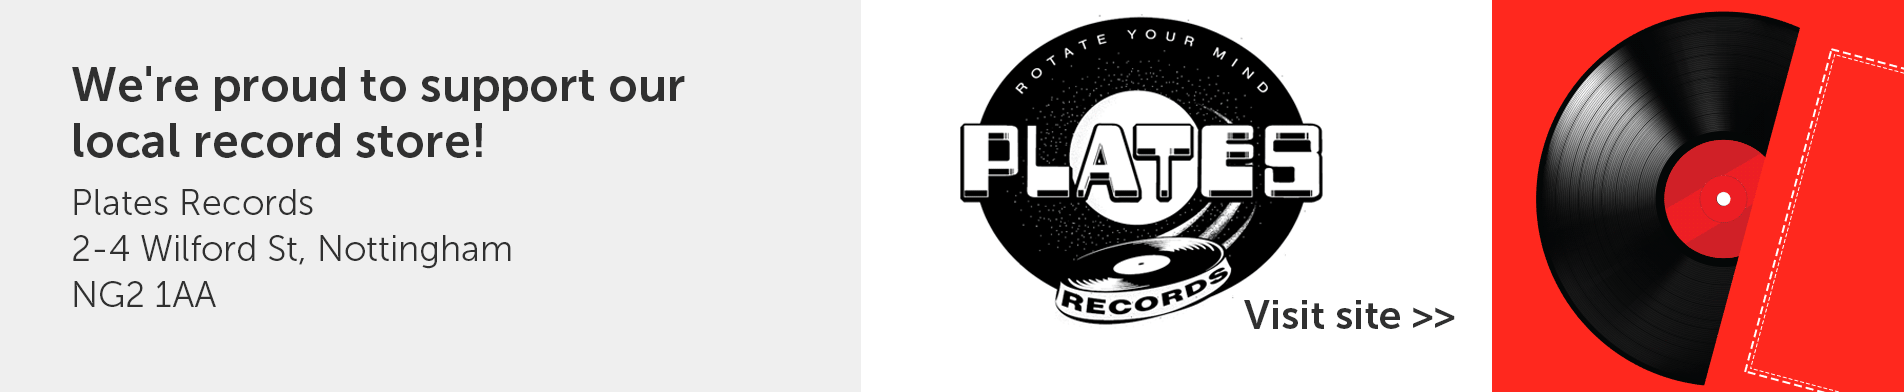 Plates Records